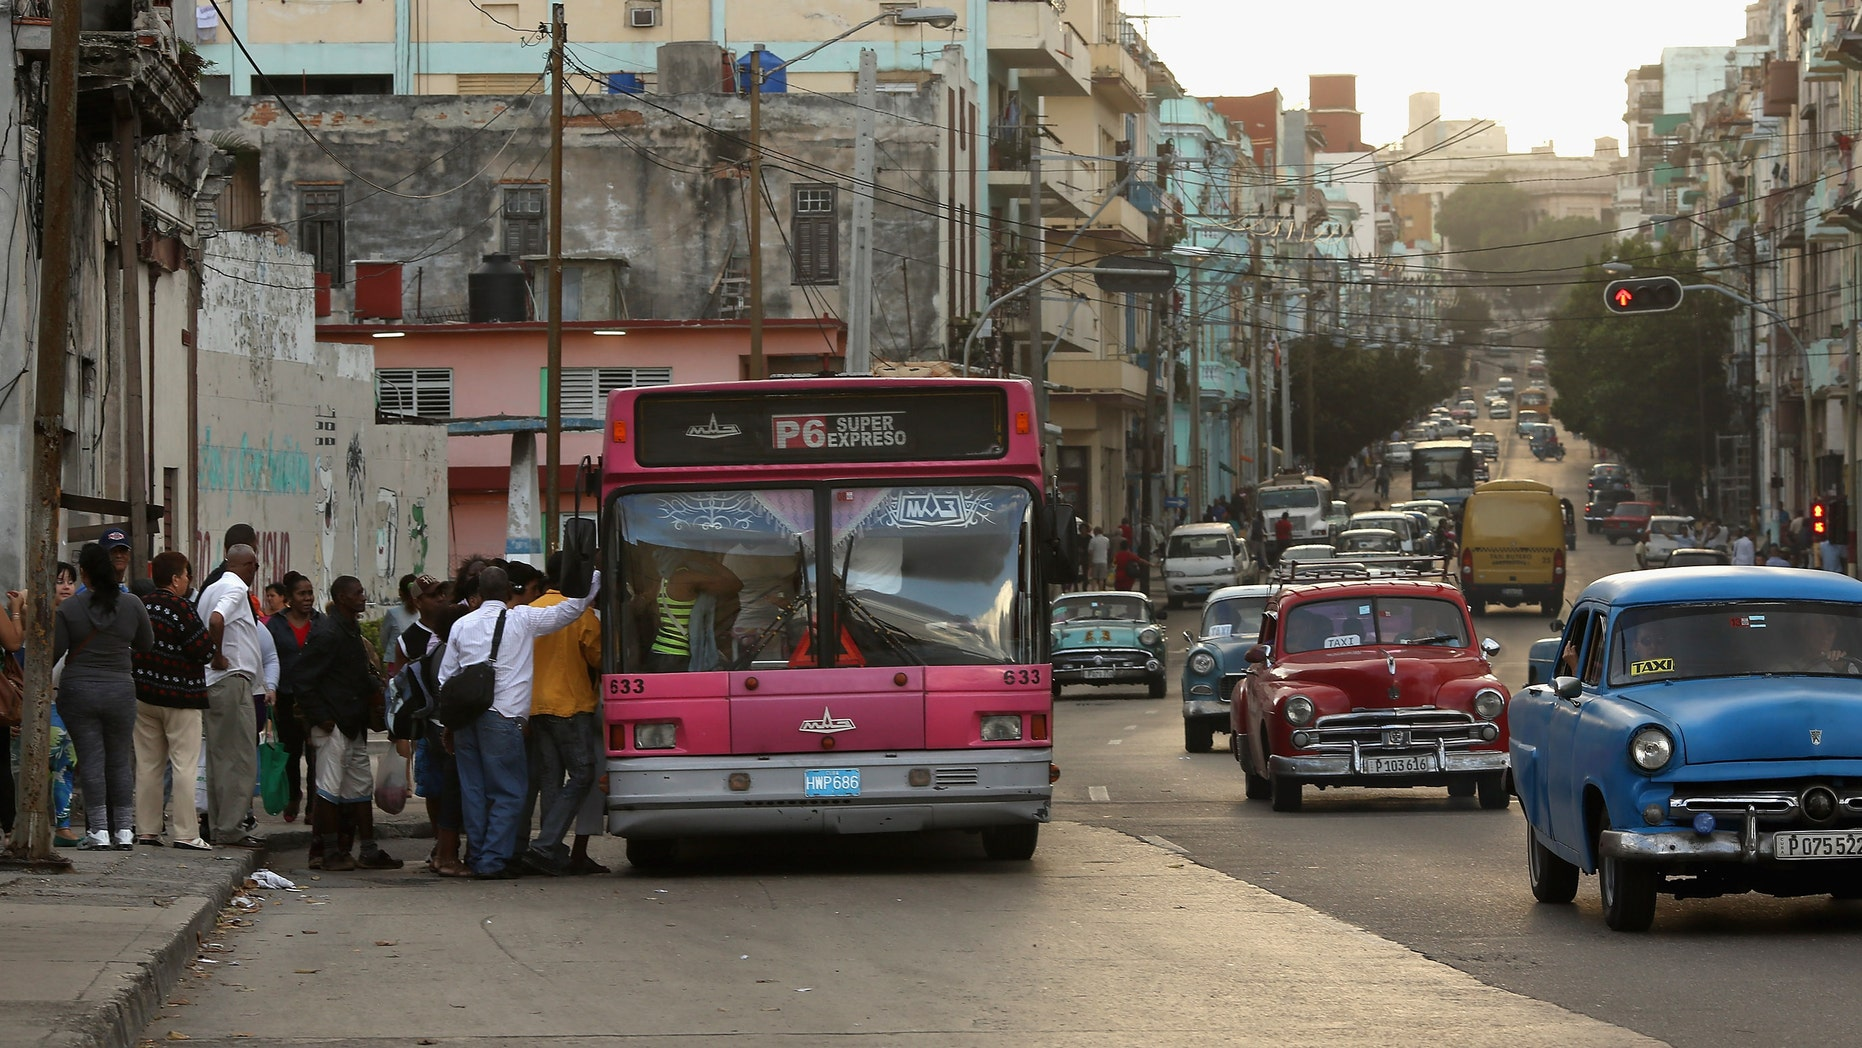 Cuban commuters during the rush home in the Vedado district January 26, 2015 in Havana, Cuba.